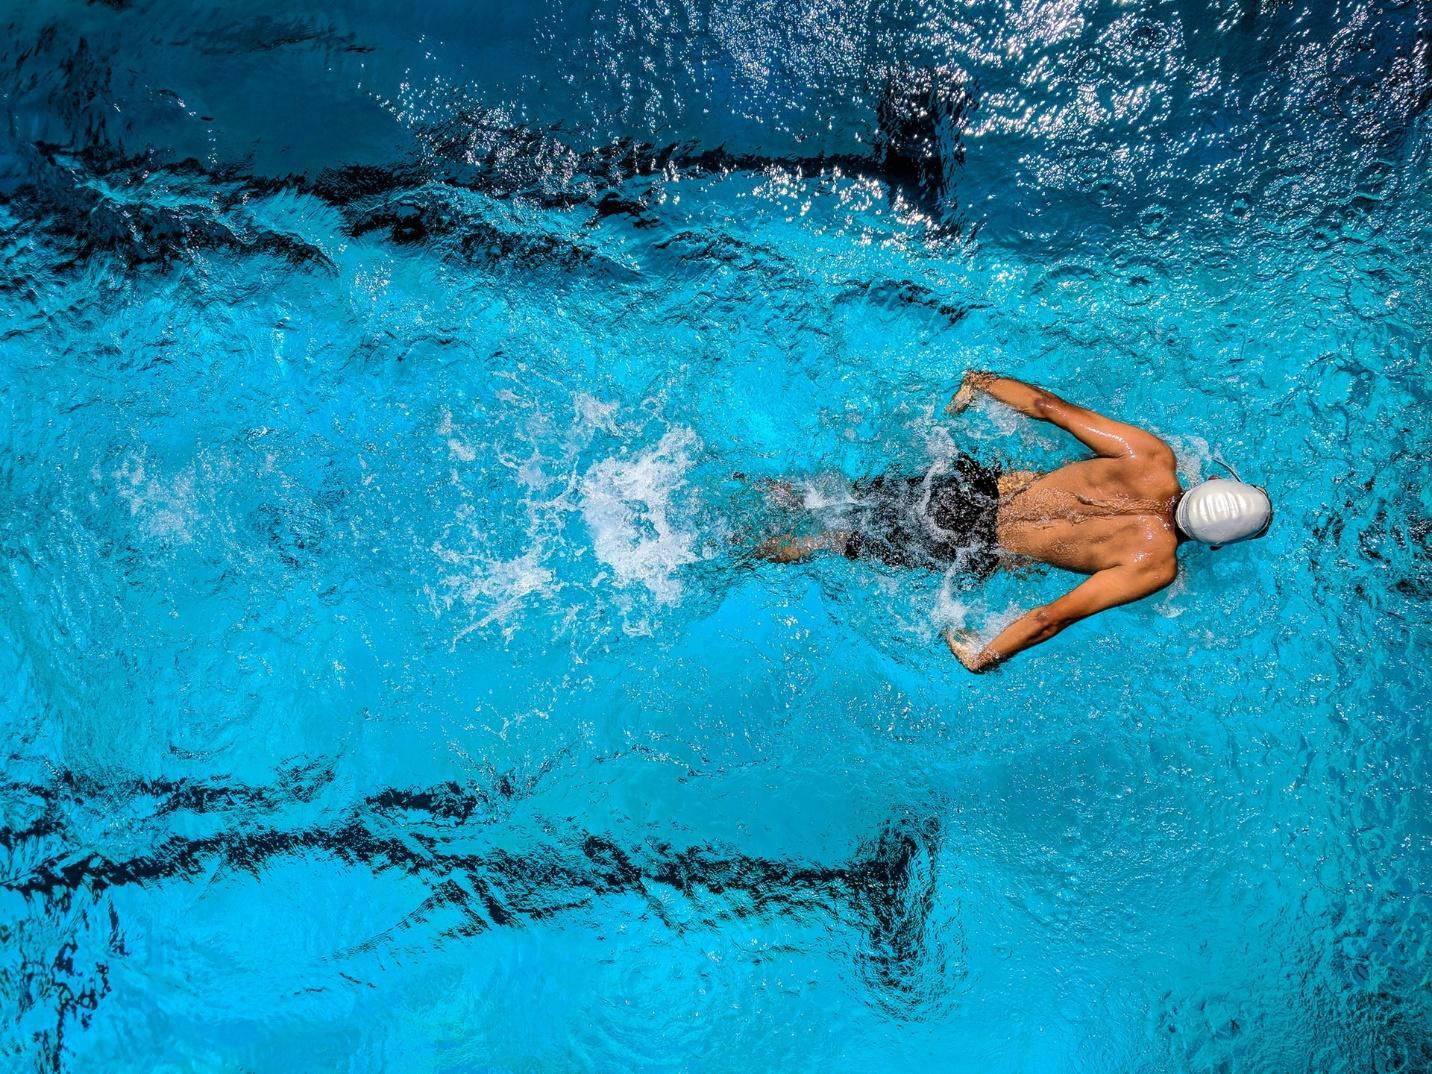 A picture containing water, sport, riding, wave  Description automatically generated